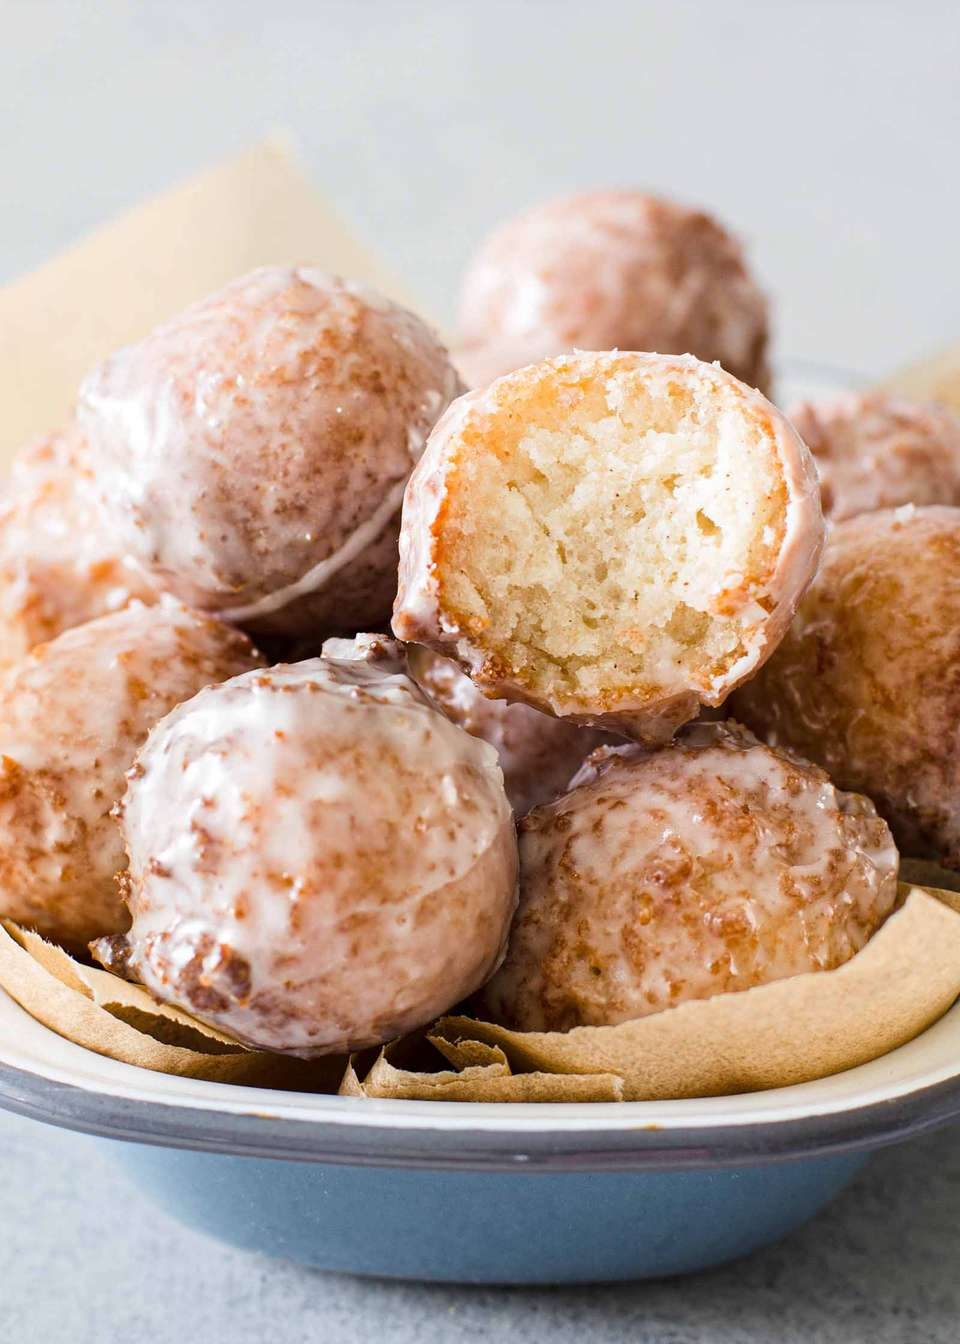 How to make these apple cider donut holes, which are piled up in a while bowl. The one on top has a bite taken out of it.